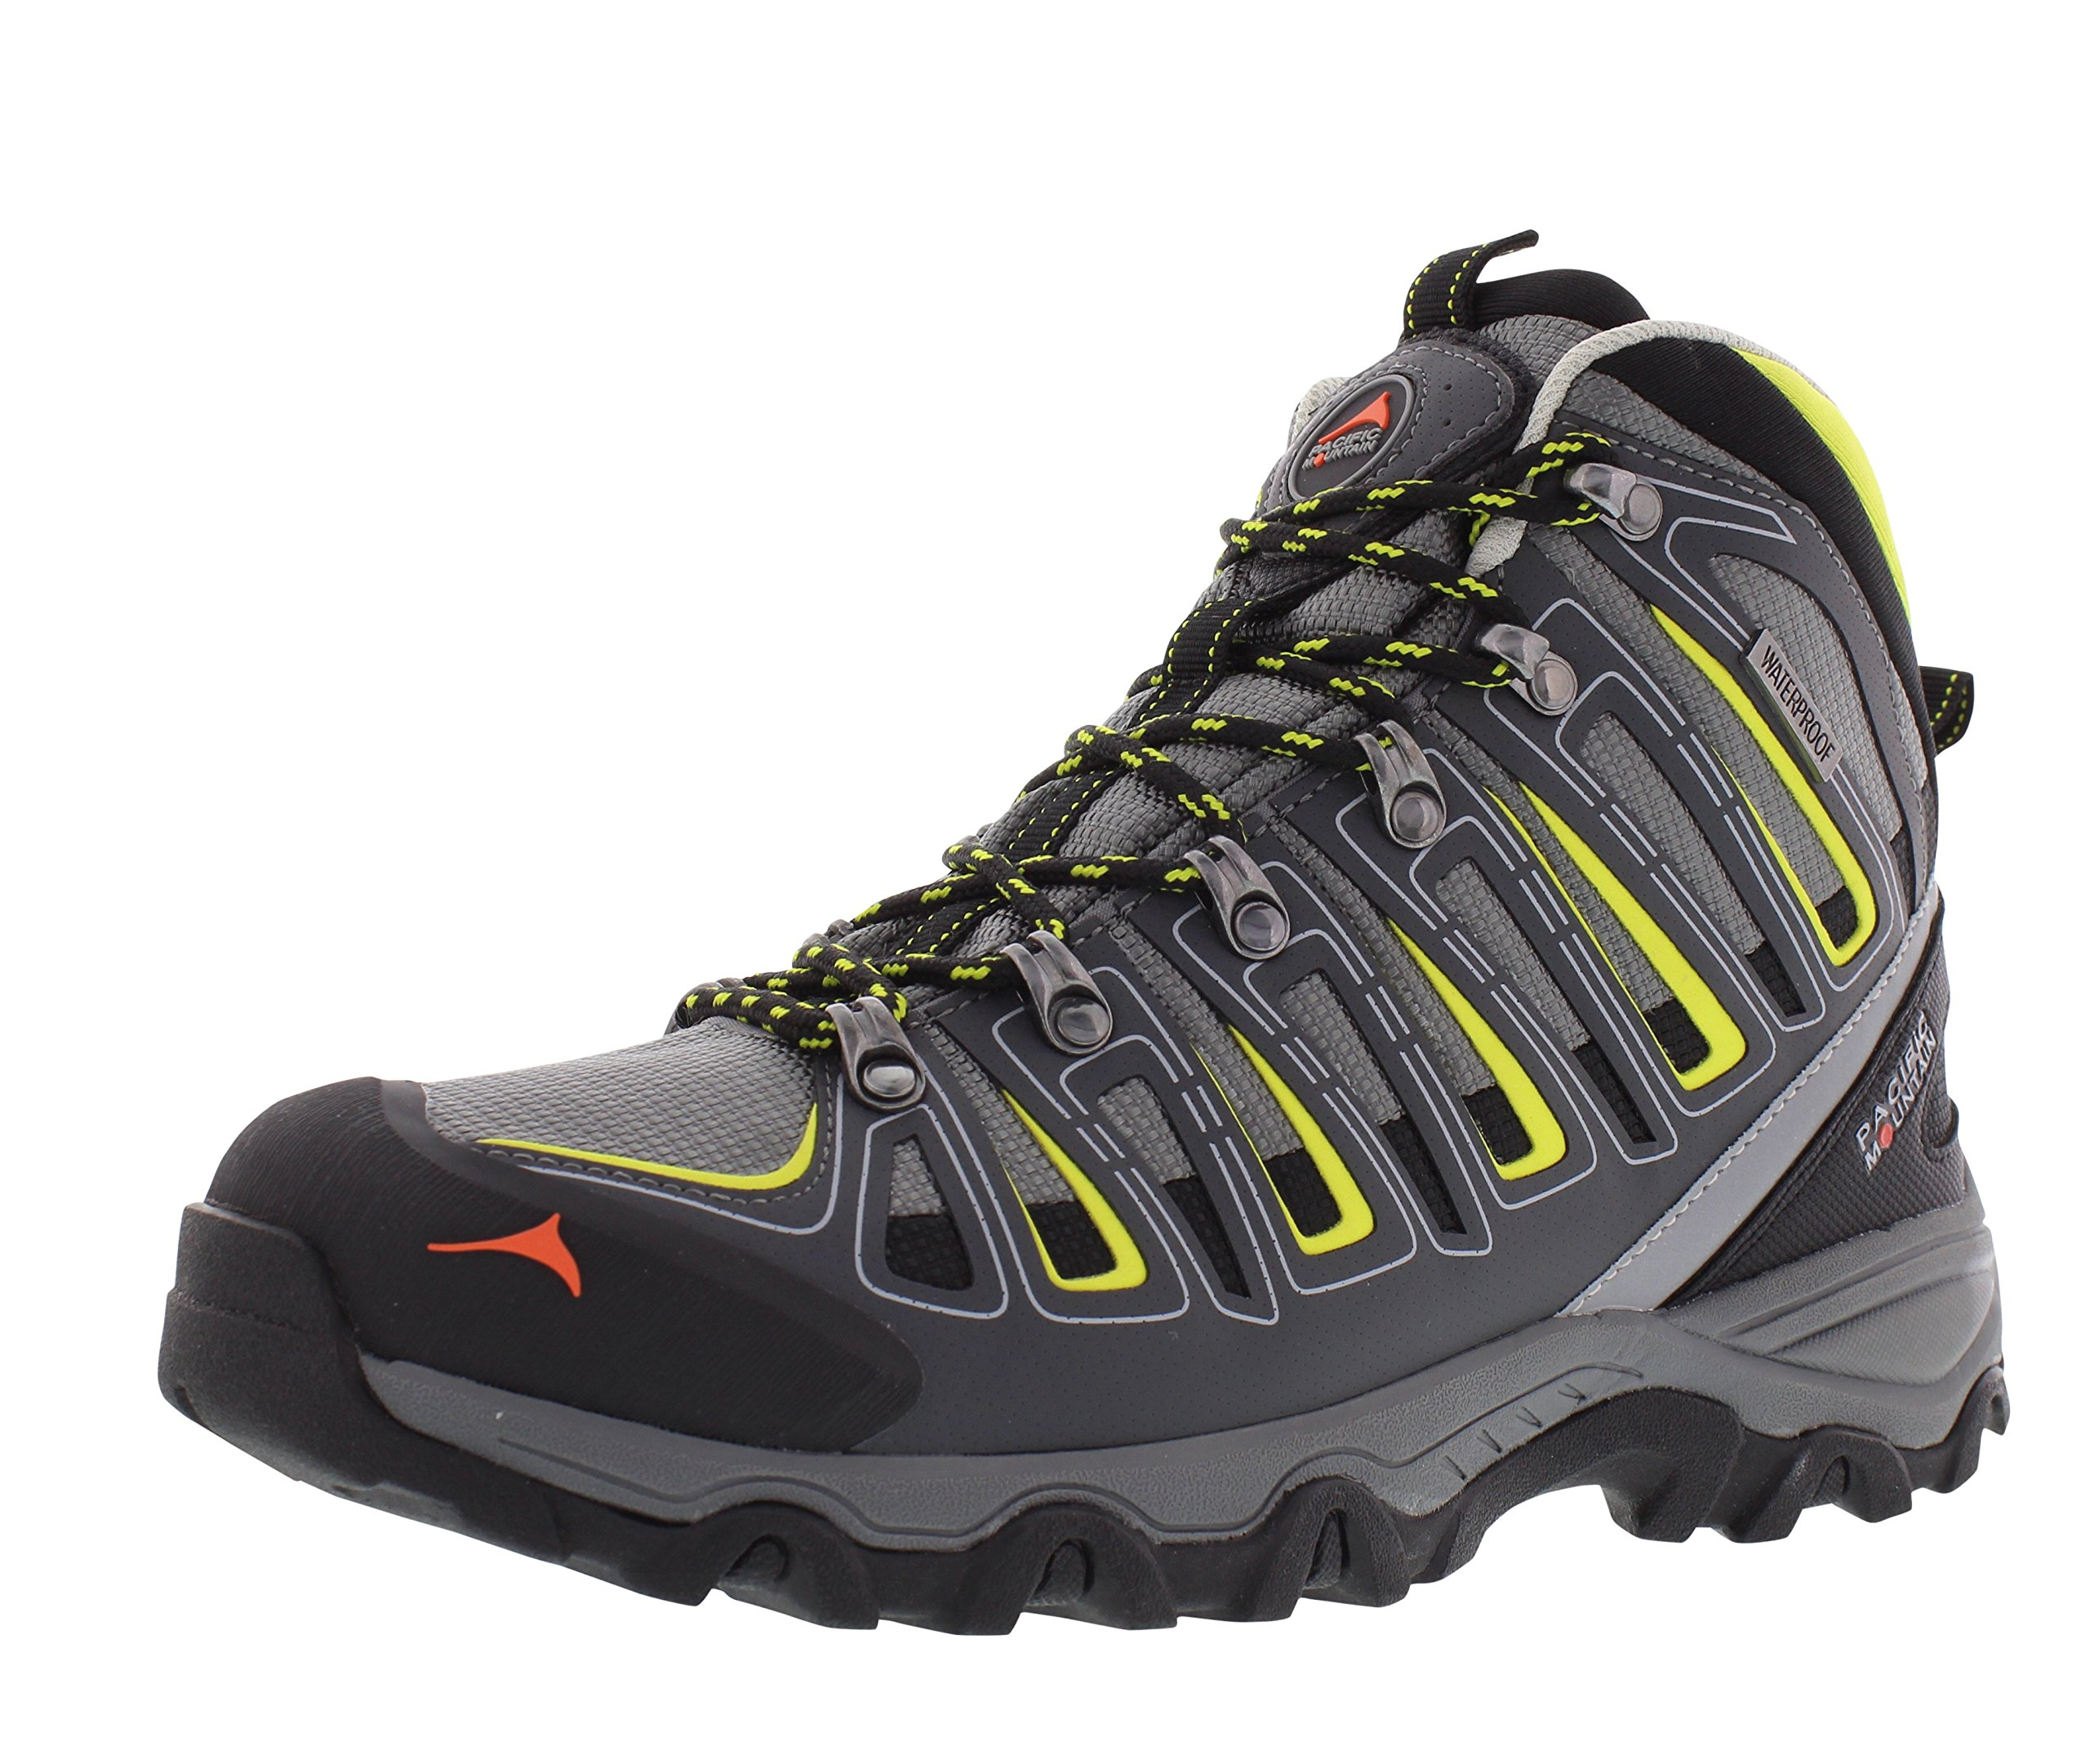 Pacific Mountain Incline Men's Waterproof Hiking Backpacking Mid-Cut Grey/Yellow/Black Boots Size 10.5 by Pacific Mountain